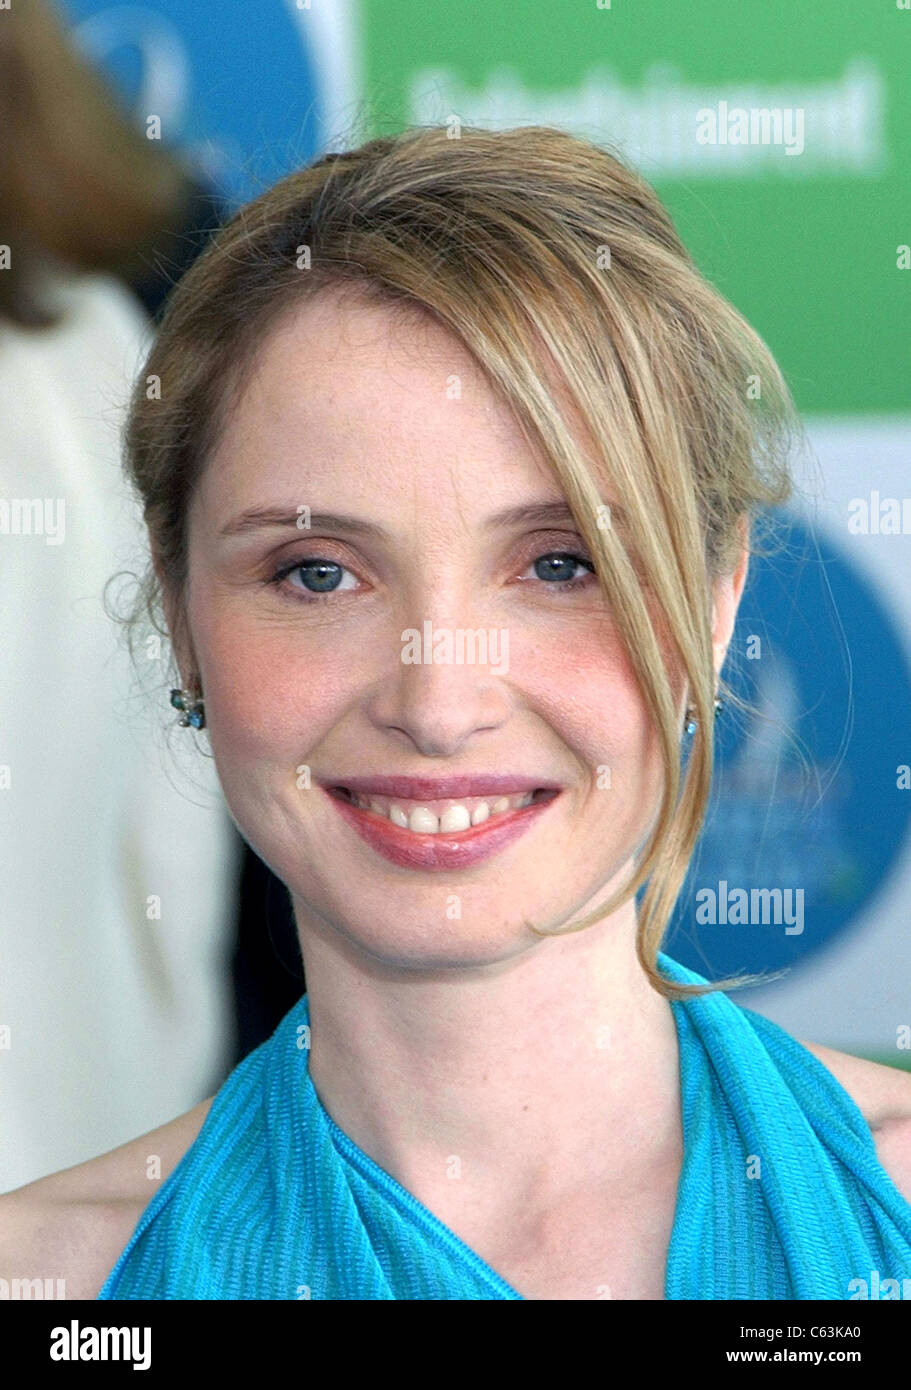 Julie Delpy at arrivals for 20th IFP Independent Spirit Awards, Los Angeles, CA, Saturday, February 26, 2005. Photo - Stock Image